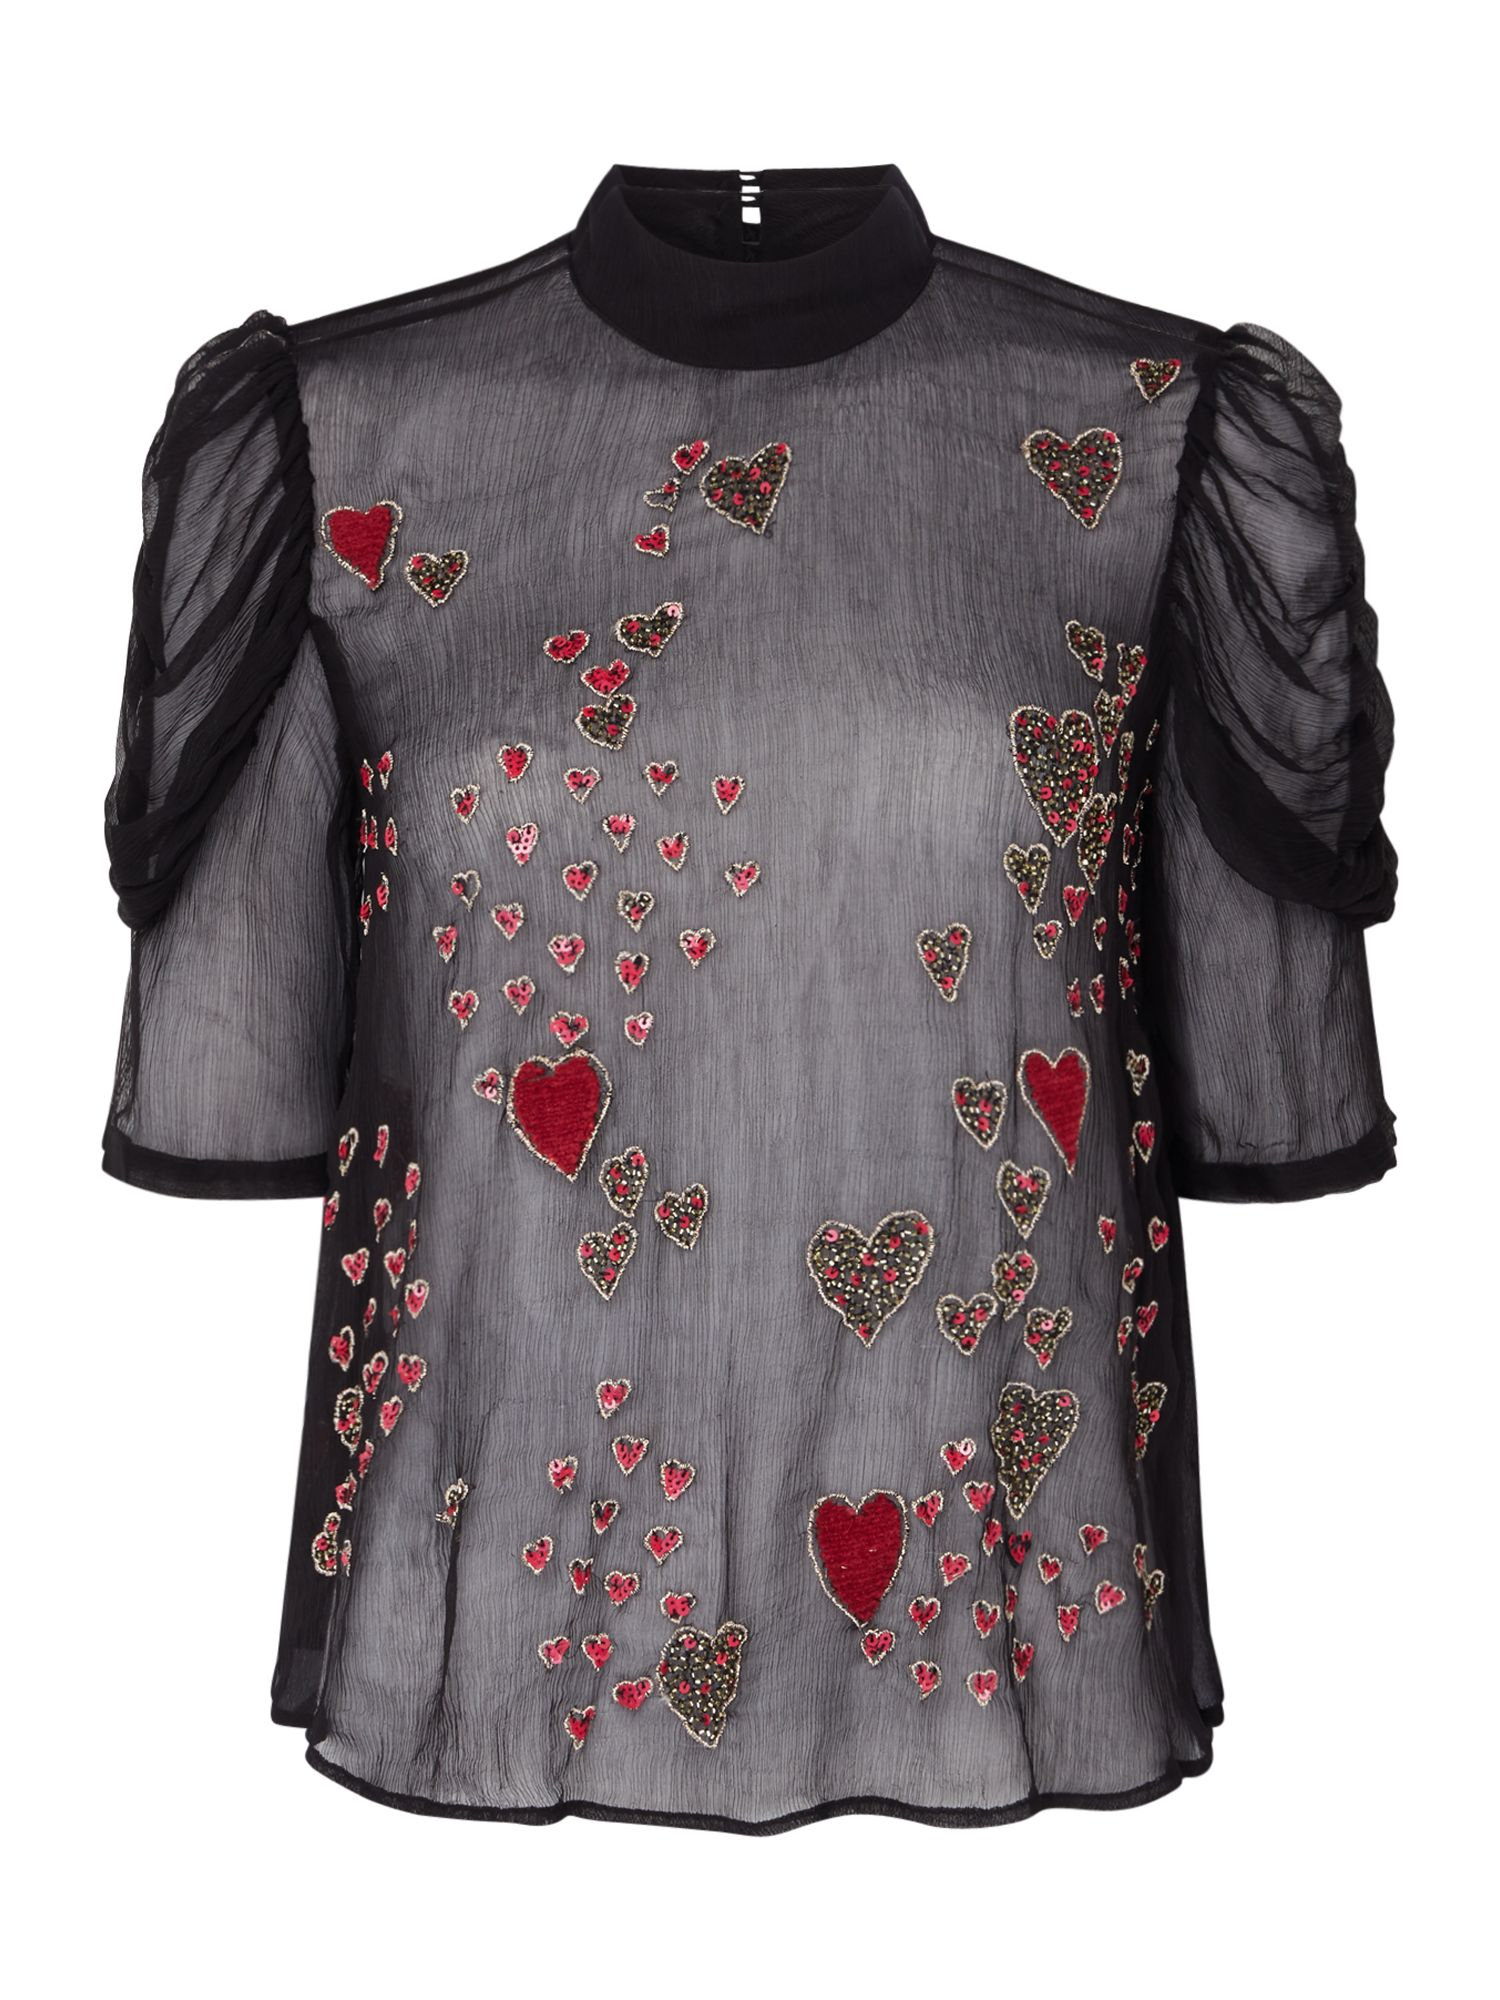 Free People So In Love Heart Embroidered Sheer Blouse, Black